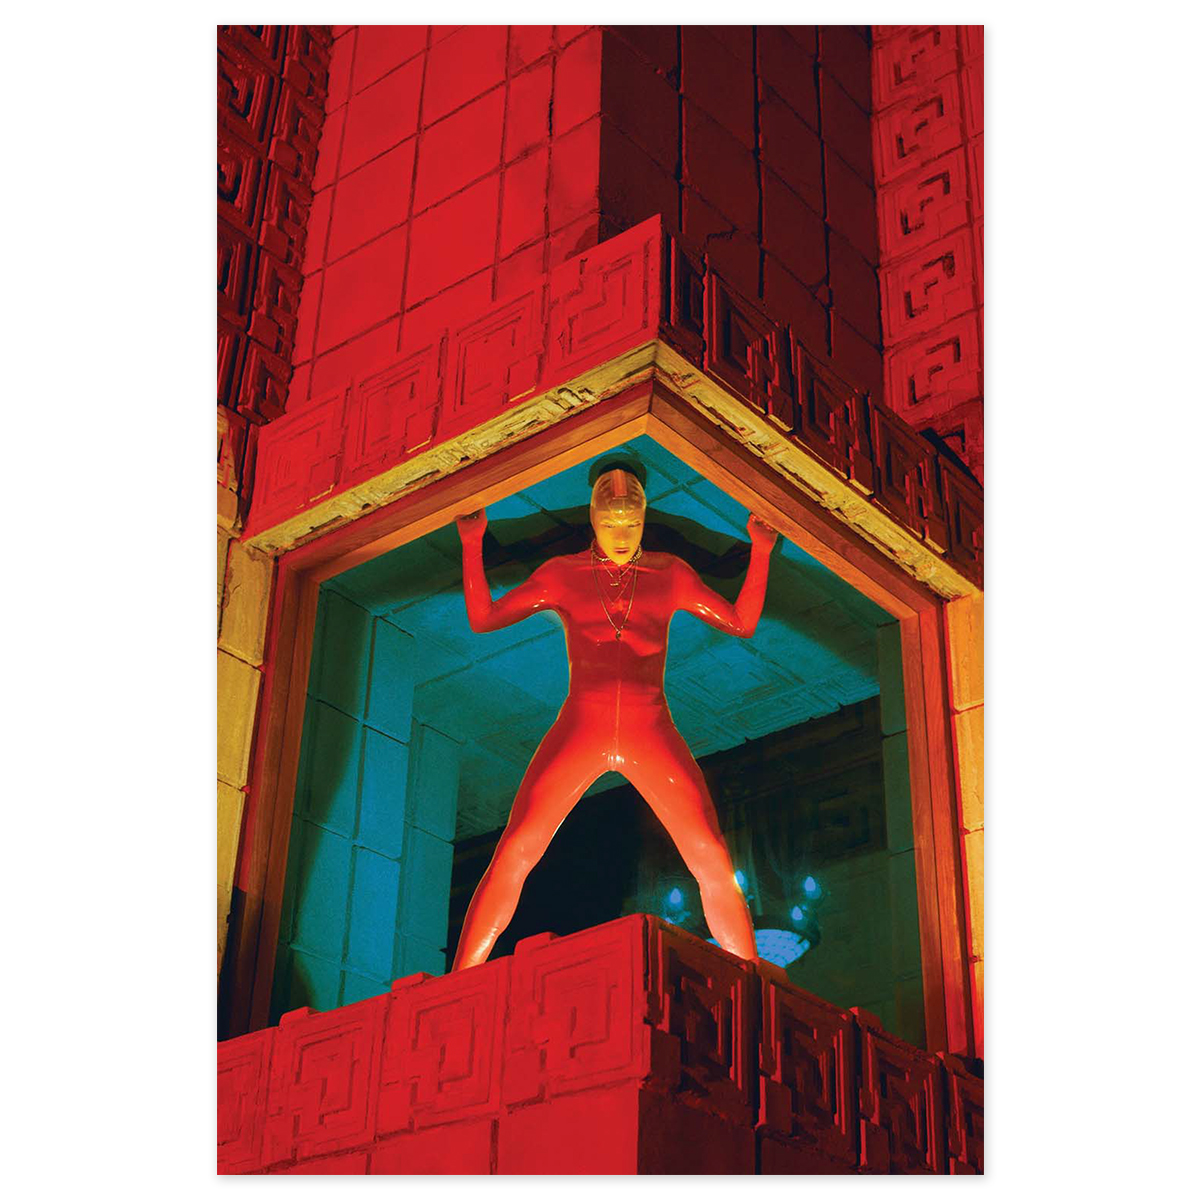 Cage The Elephant - Social Cues Deluxe Translucent Pink Vinyl + 3-Poster Set